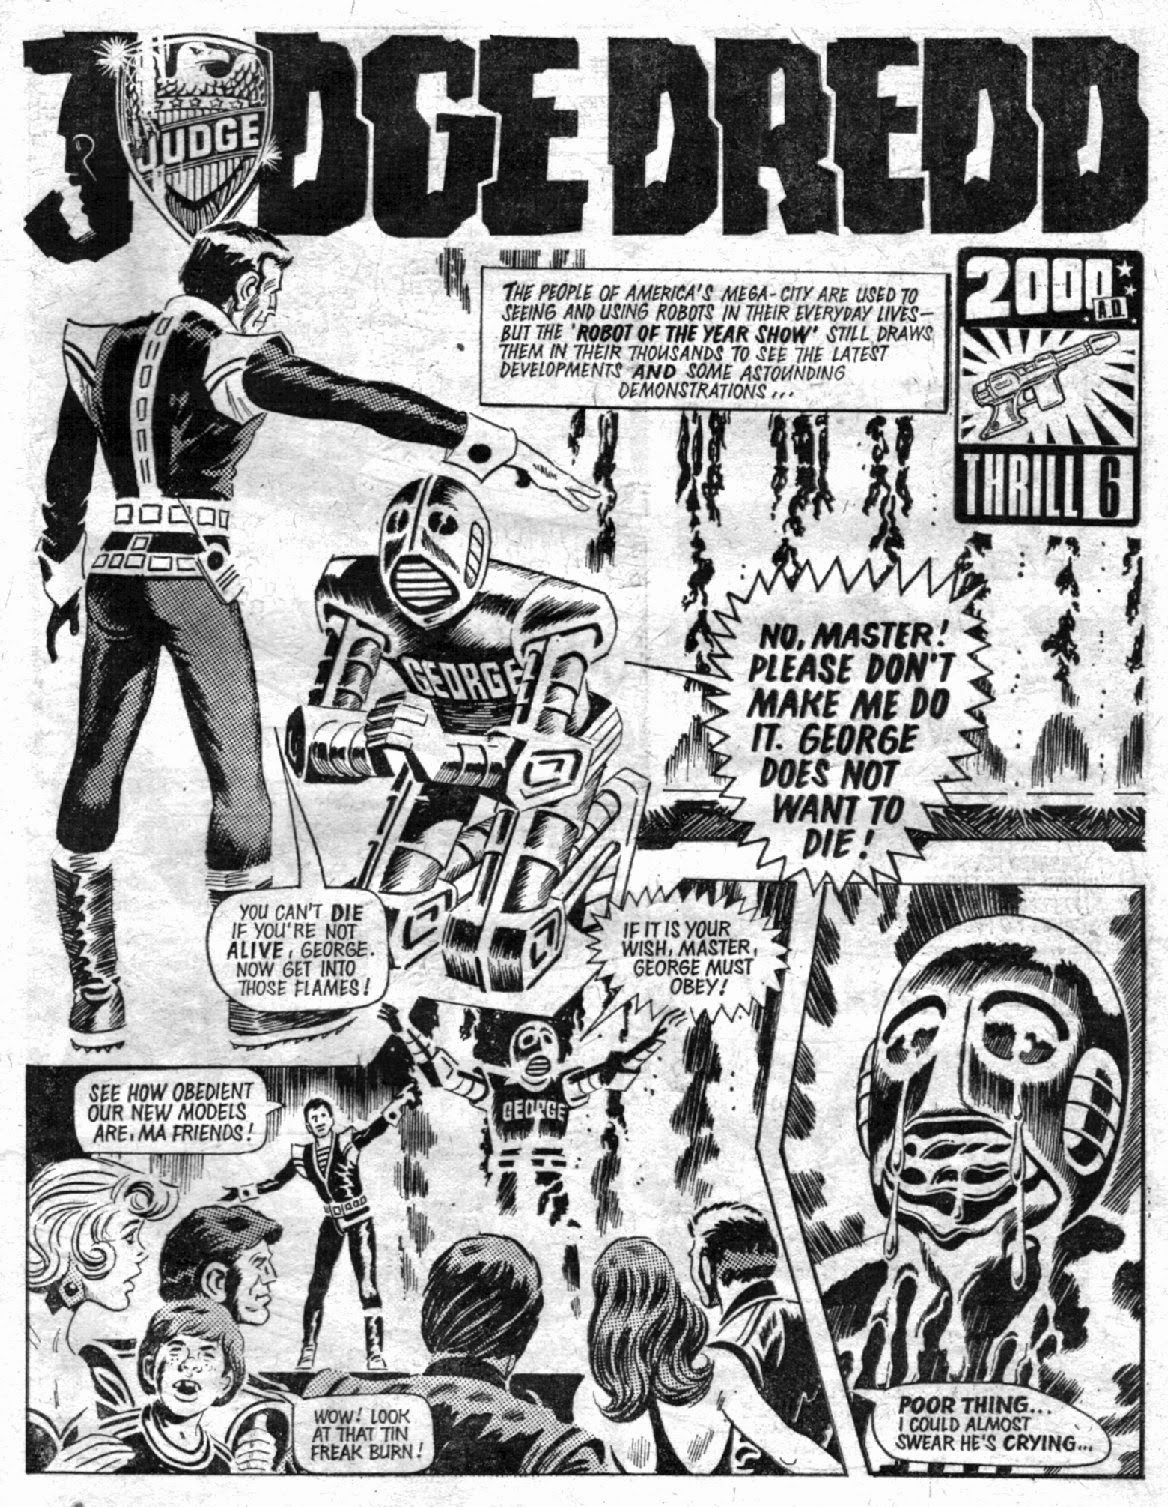 Figure 203 prior to the start of robot wars judge dredd made the moral legitimacy of a robot rebellion unequivocal written by